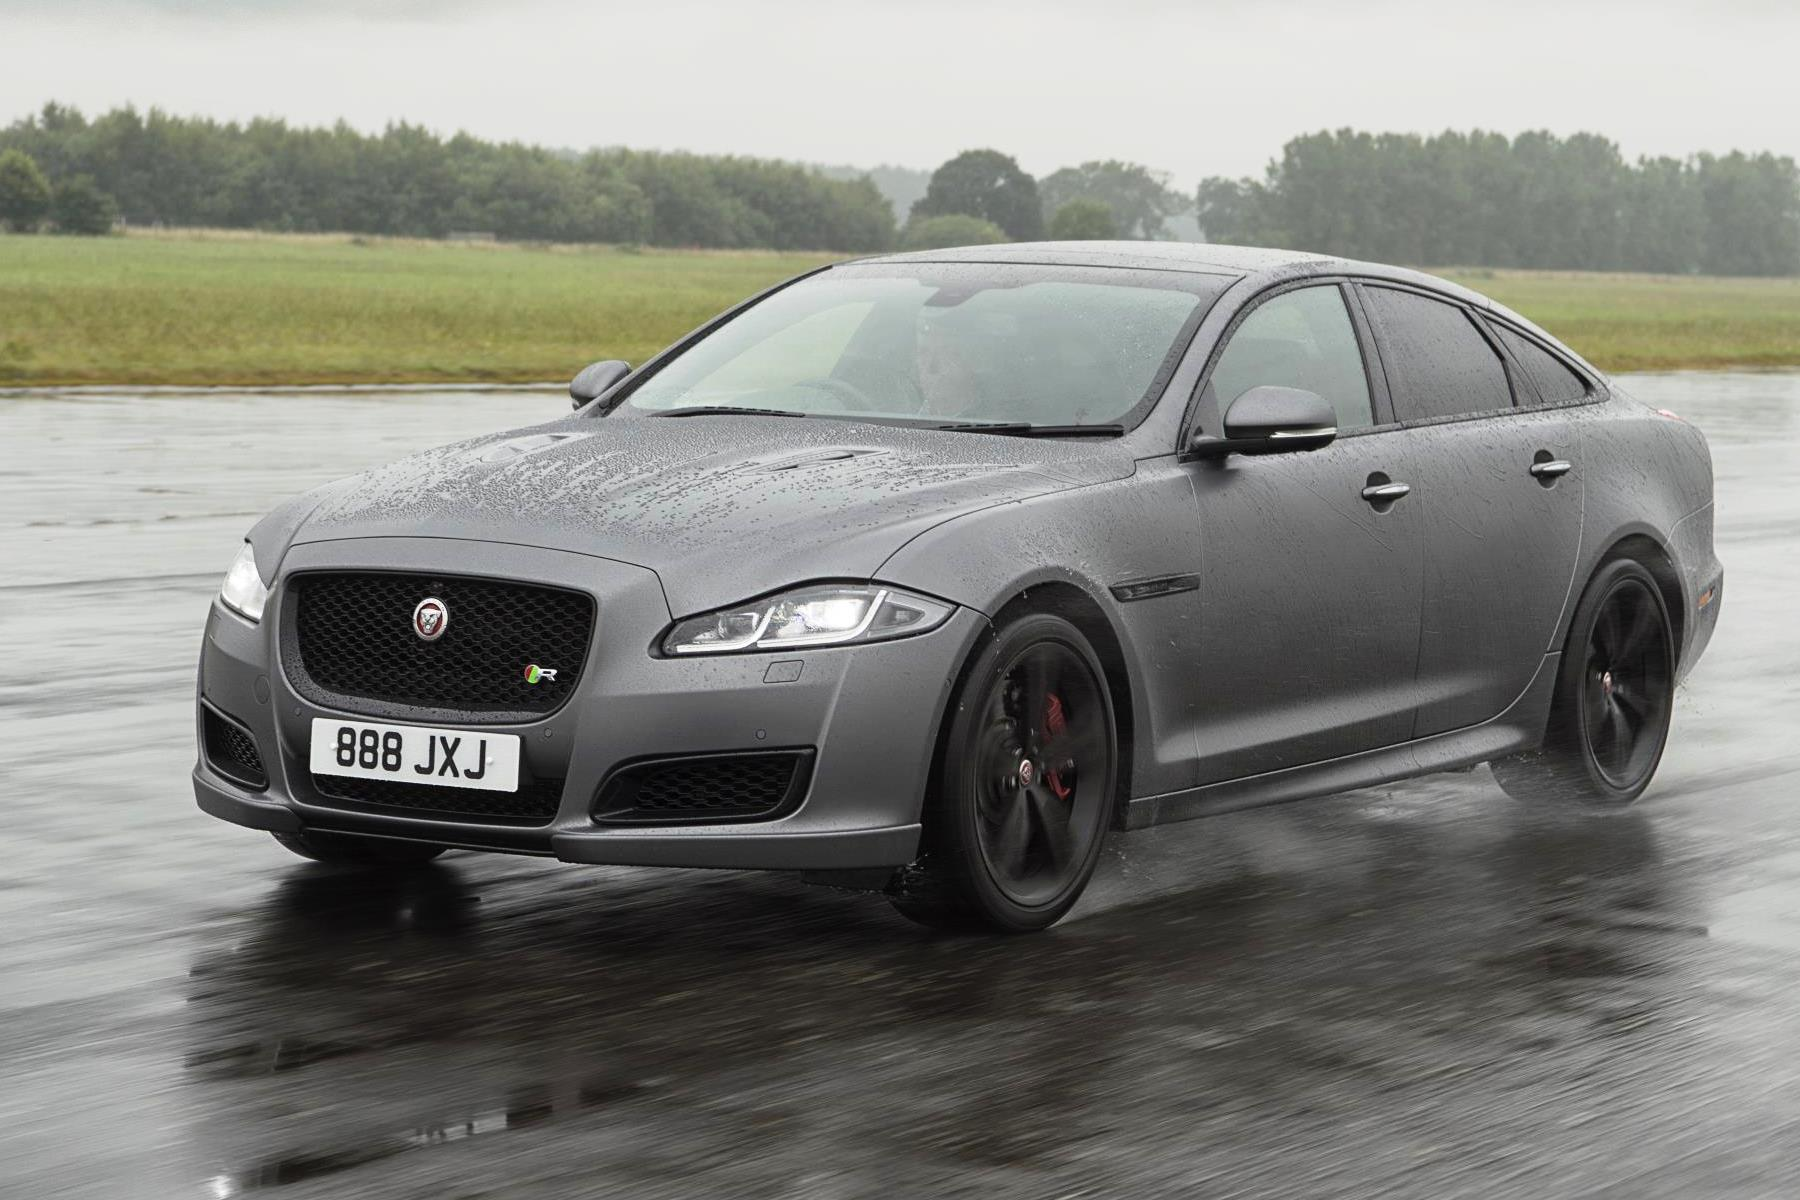 Jaguar updates XJ with new technology for 2018